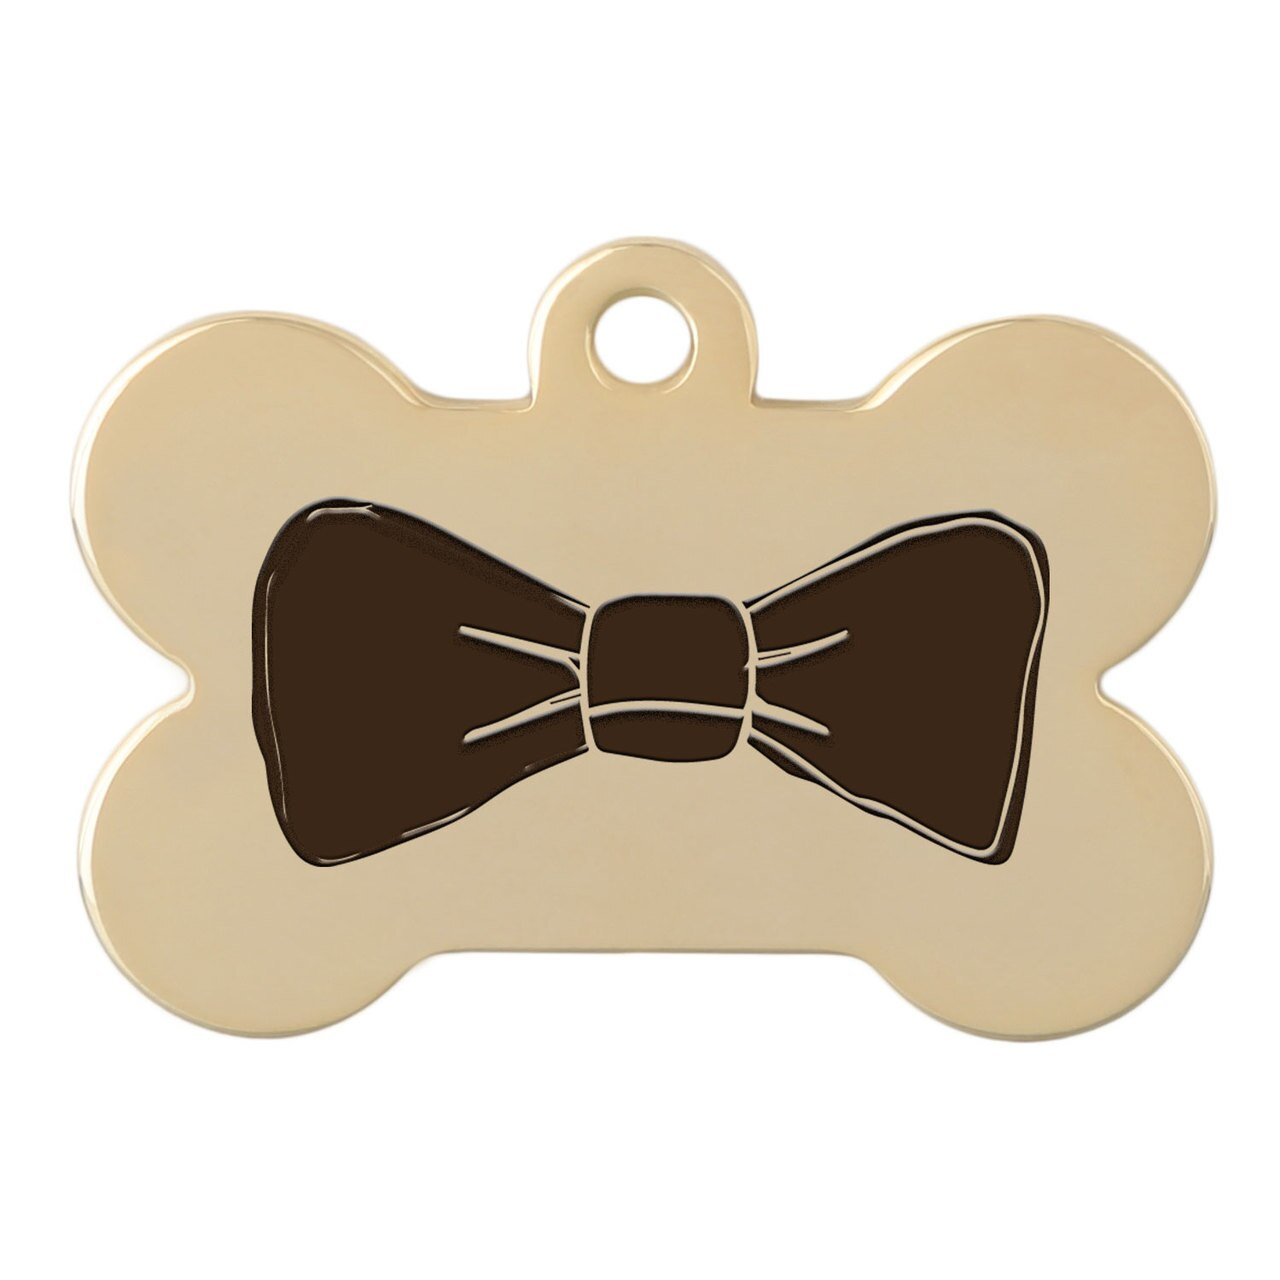 dogIDs Signature Fancy Suit and Tie Dog ID Tags Bow Tie Gold